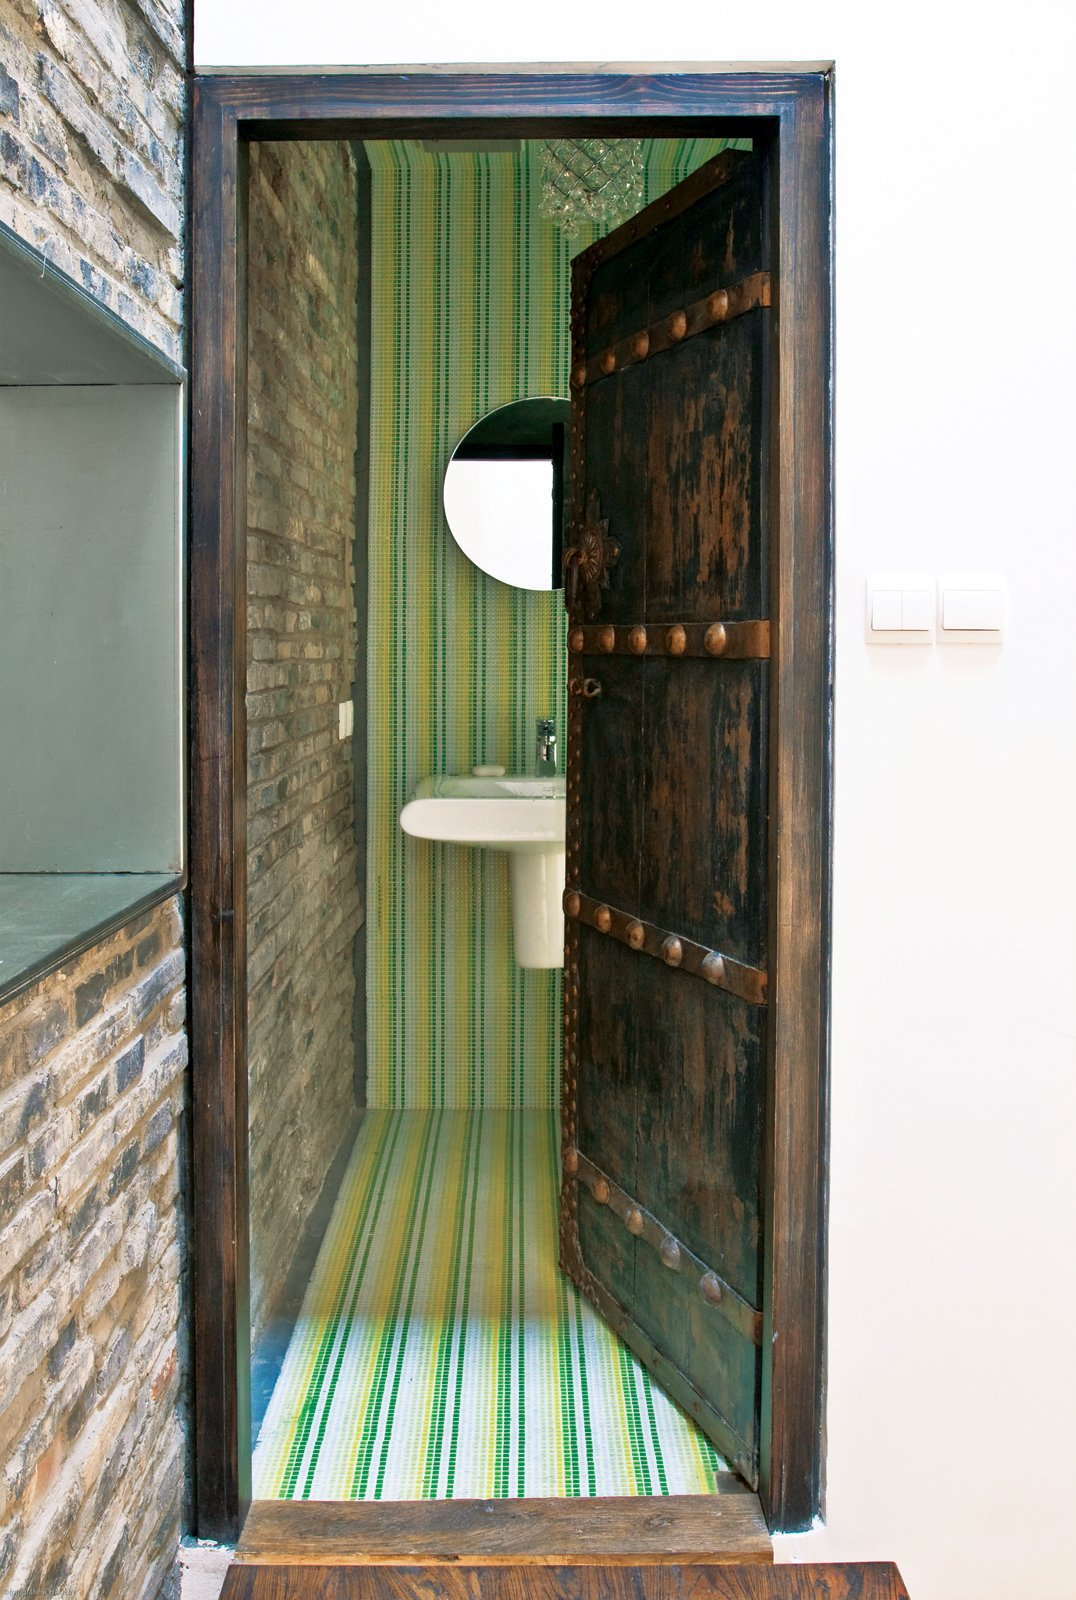 Carbone preserved many of the home's original bones while replacing the roof and plumbing and shoring up the structure. The interior spaces, too, mix new and old. Allegranti found many of the furnishings and fixtures in nearby markets, including the antique doors used in his bathroom and closet. Modern Lilong House Renovation in Shanghai - Photo 3 of 11